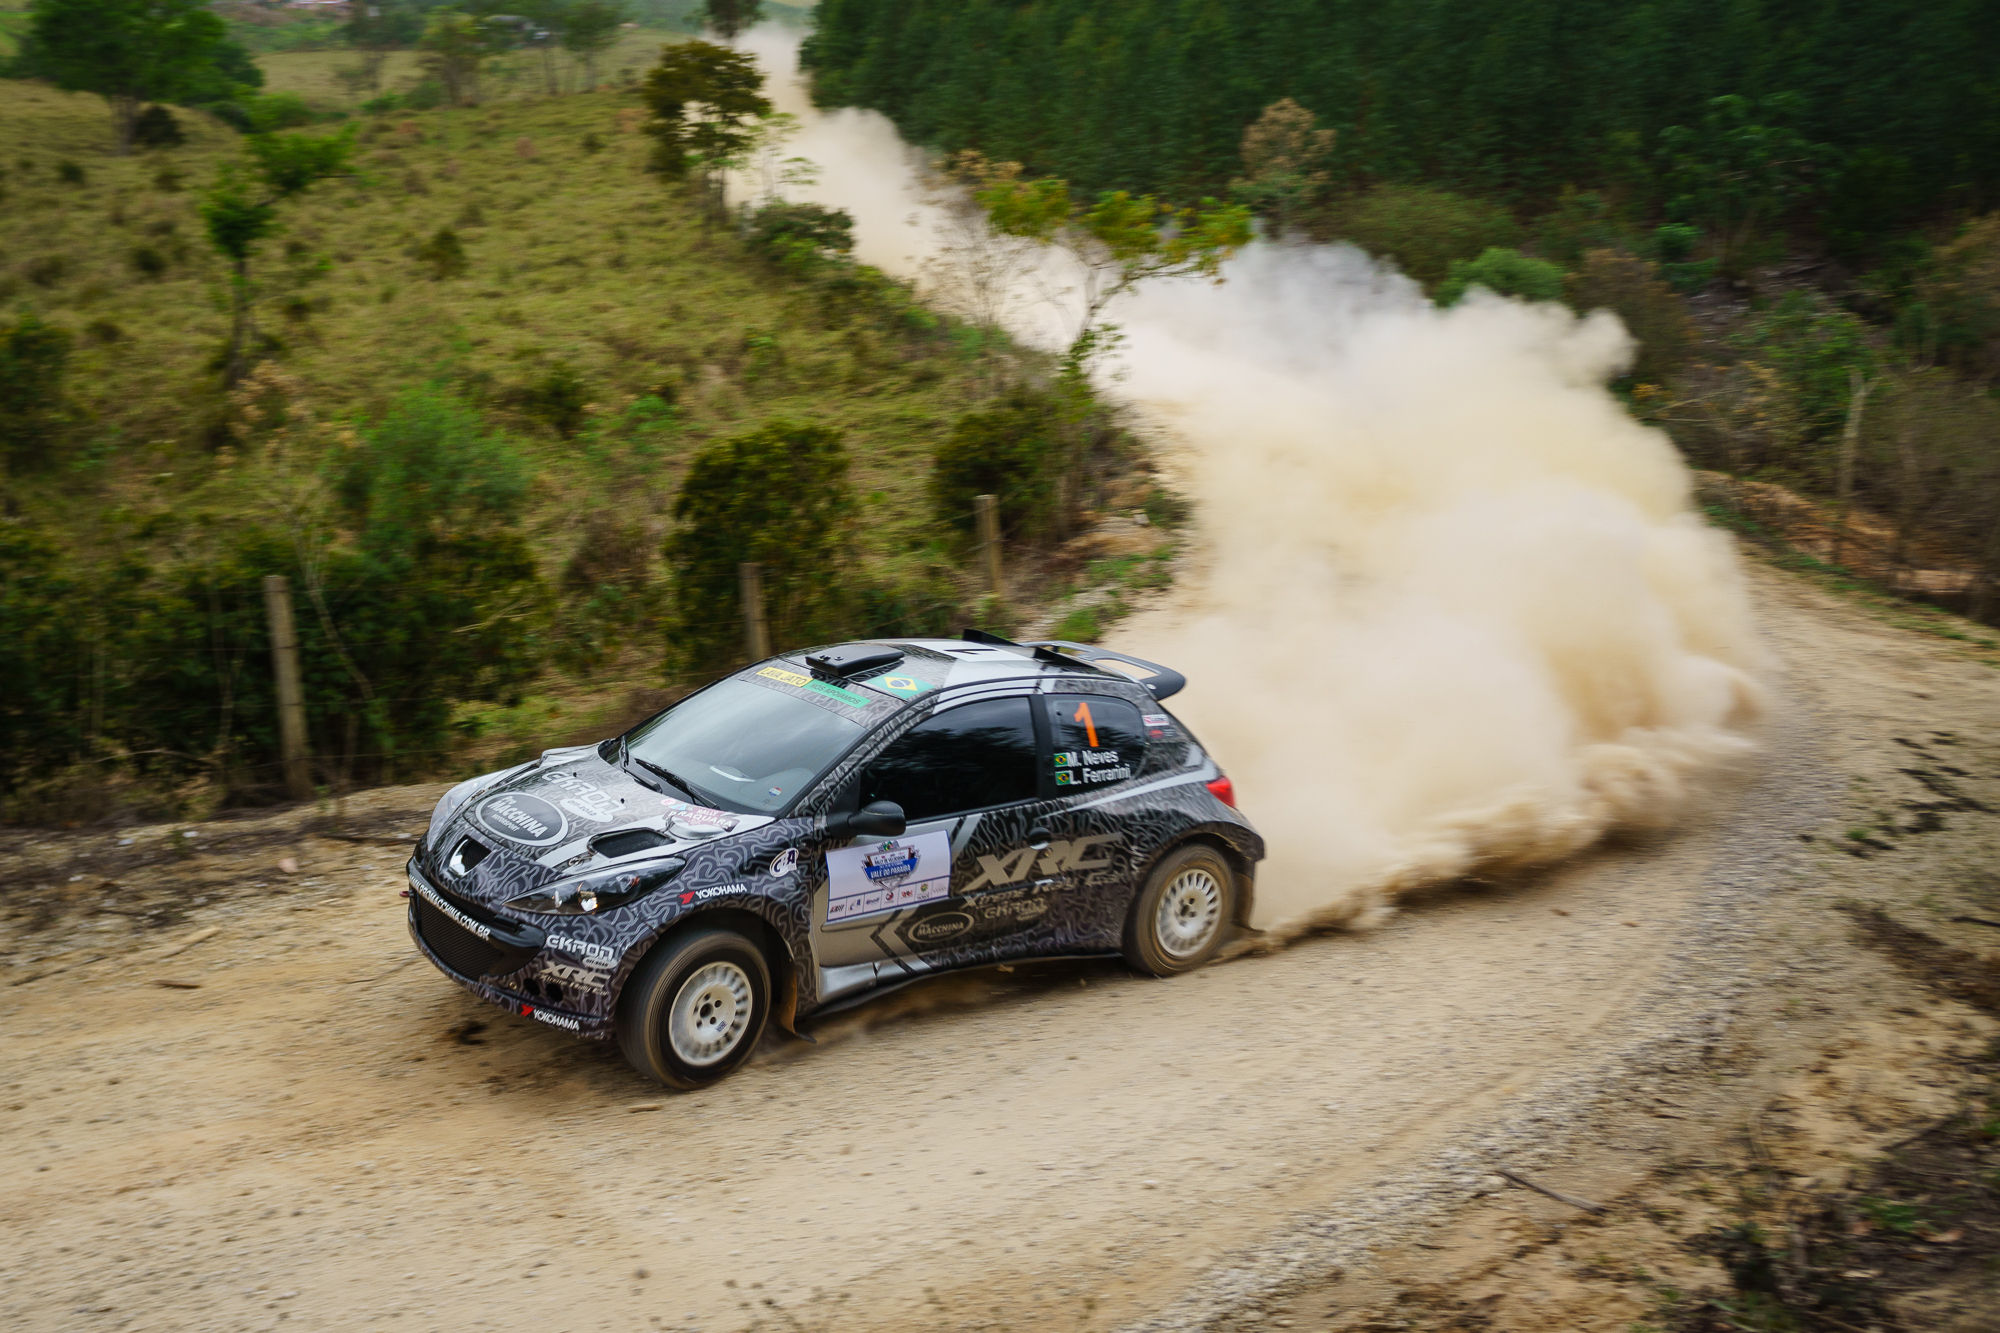 Mauricio NEves' Rally Car taking a corner at a rally